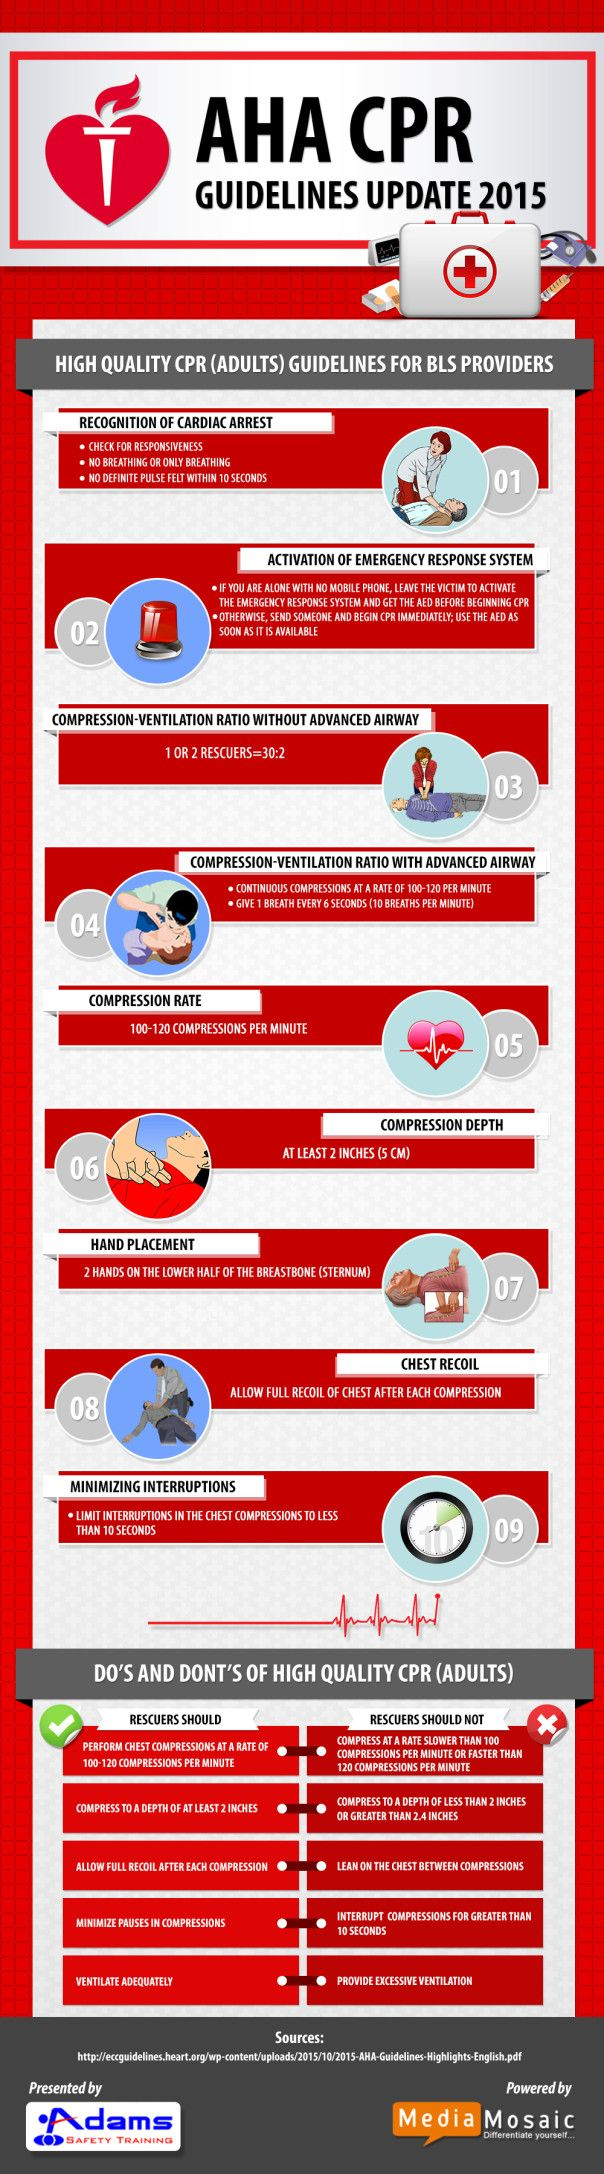 2015 AHA Guidelines Update for CPR